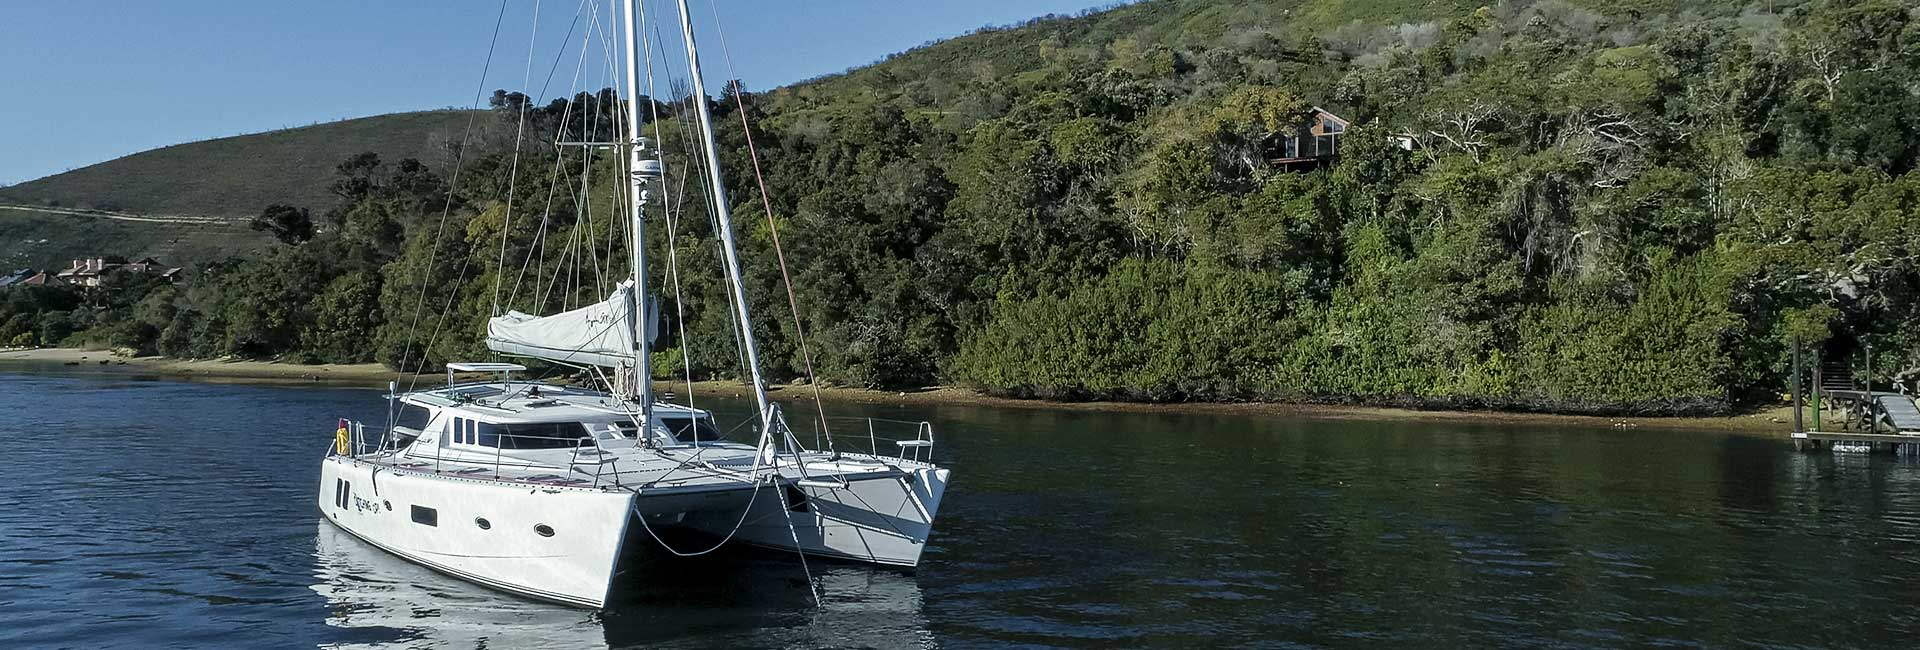 Knysna Yacht on the water